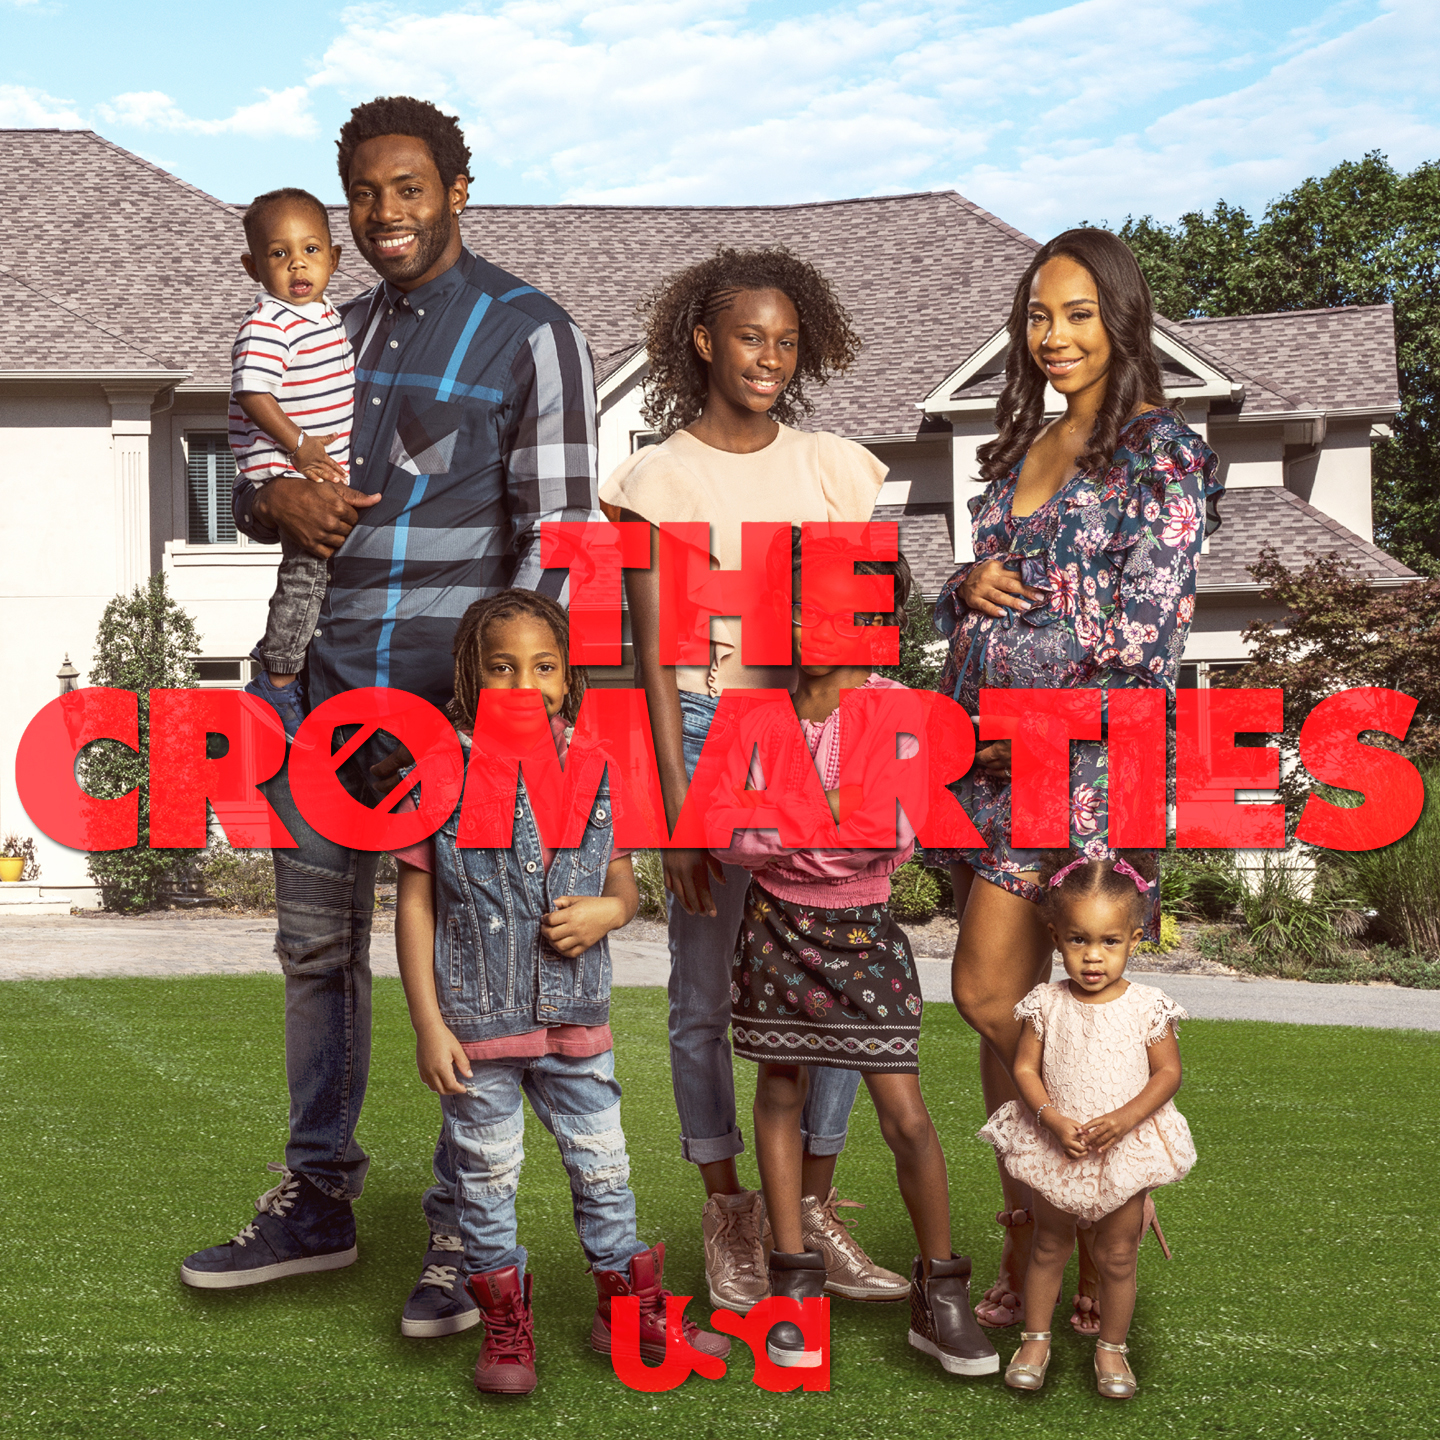 The Cromarties (USA)